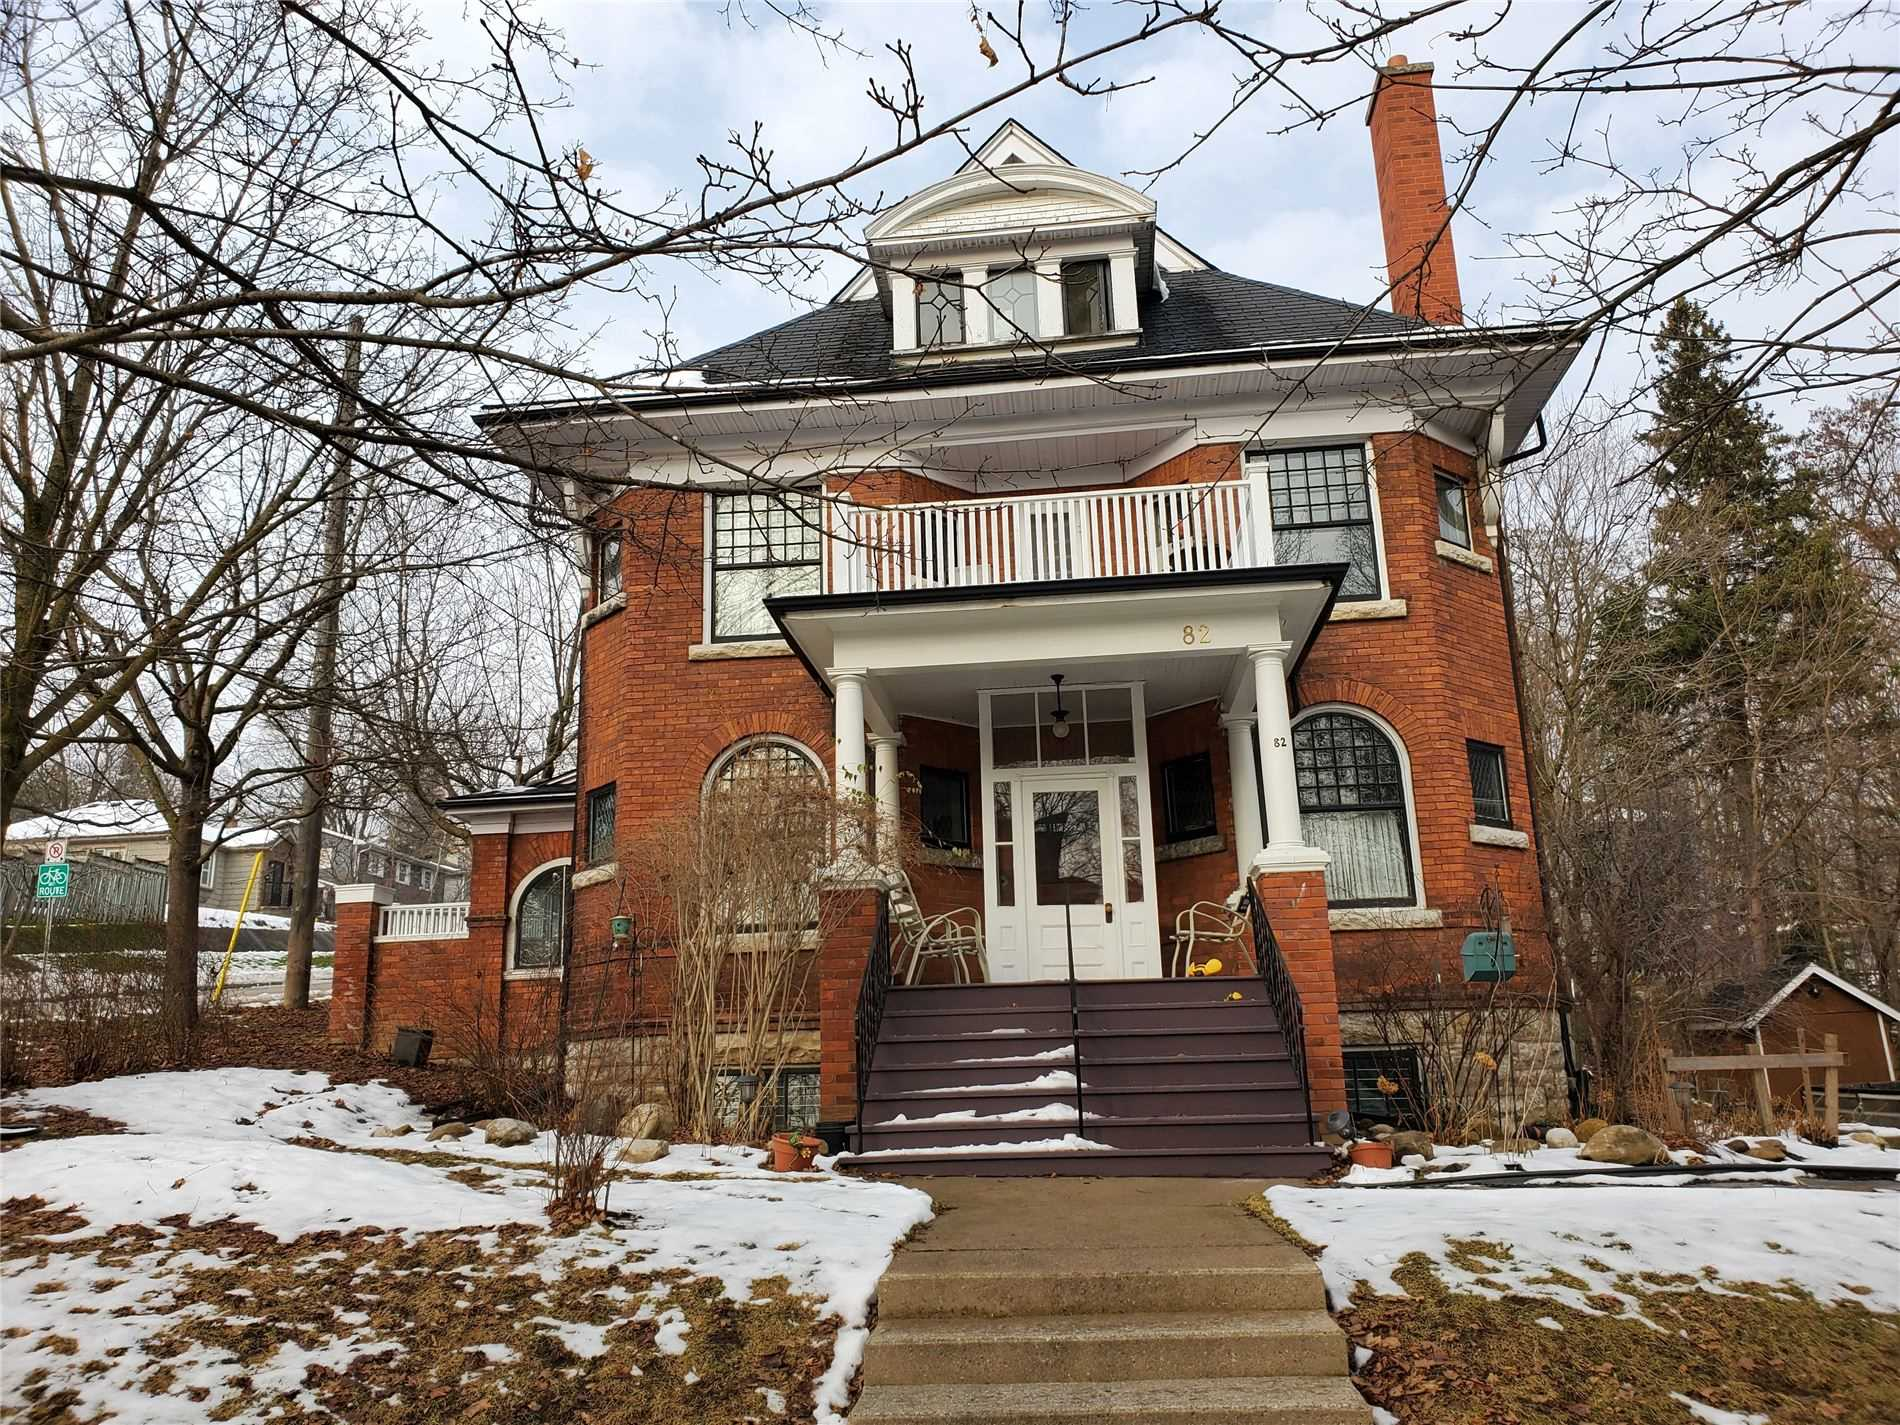 pictures of house for sale MLS: S5067854 located at 82 Tecumseth St, Orillia L3V1Y2